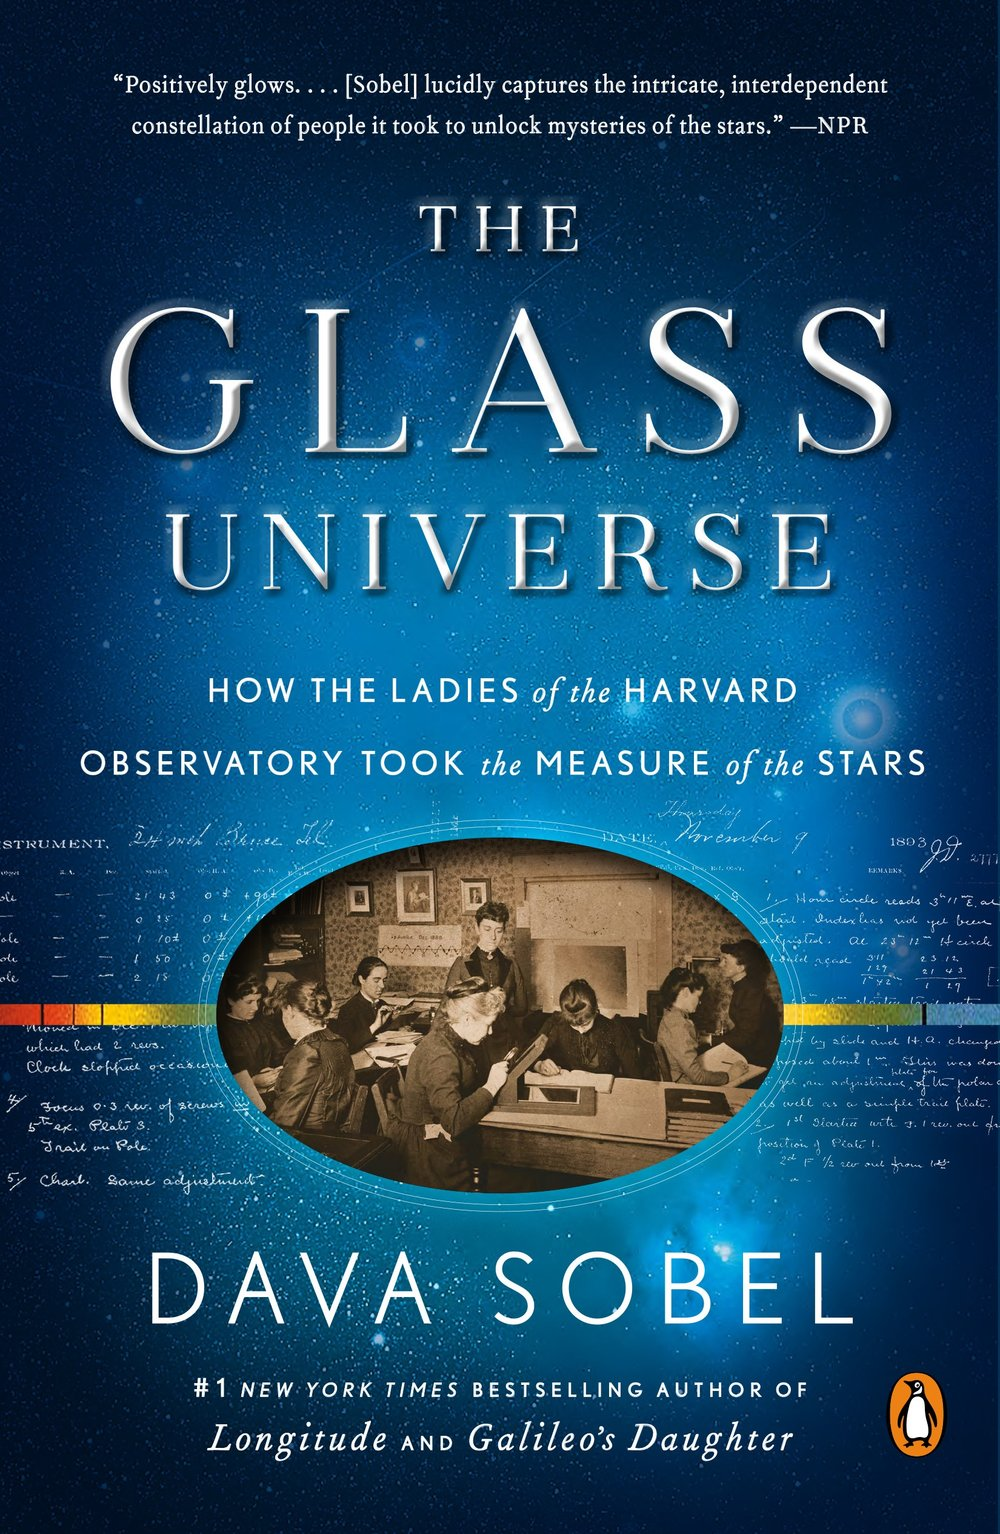 Author Dava Sobel - Will be speaking about Delaware Astronomer, Annie Jump Cannon, who spent years with her peers at Harvard classifying the stars as a computer. Sobel is also the author of several other books featuring women in science.The Glass UniverseGalileo's DaughterLongitude